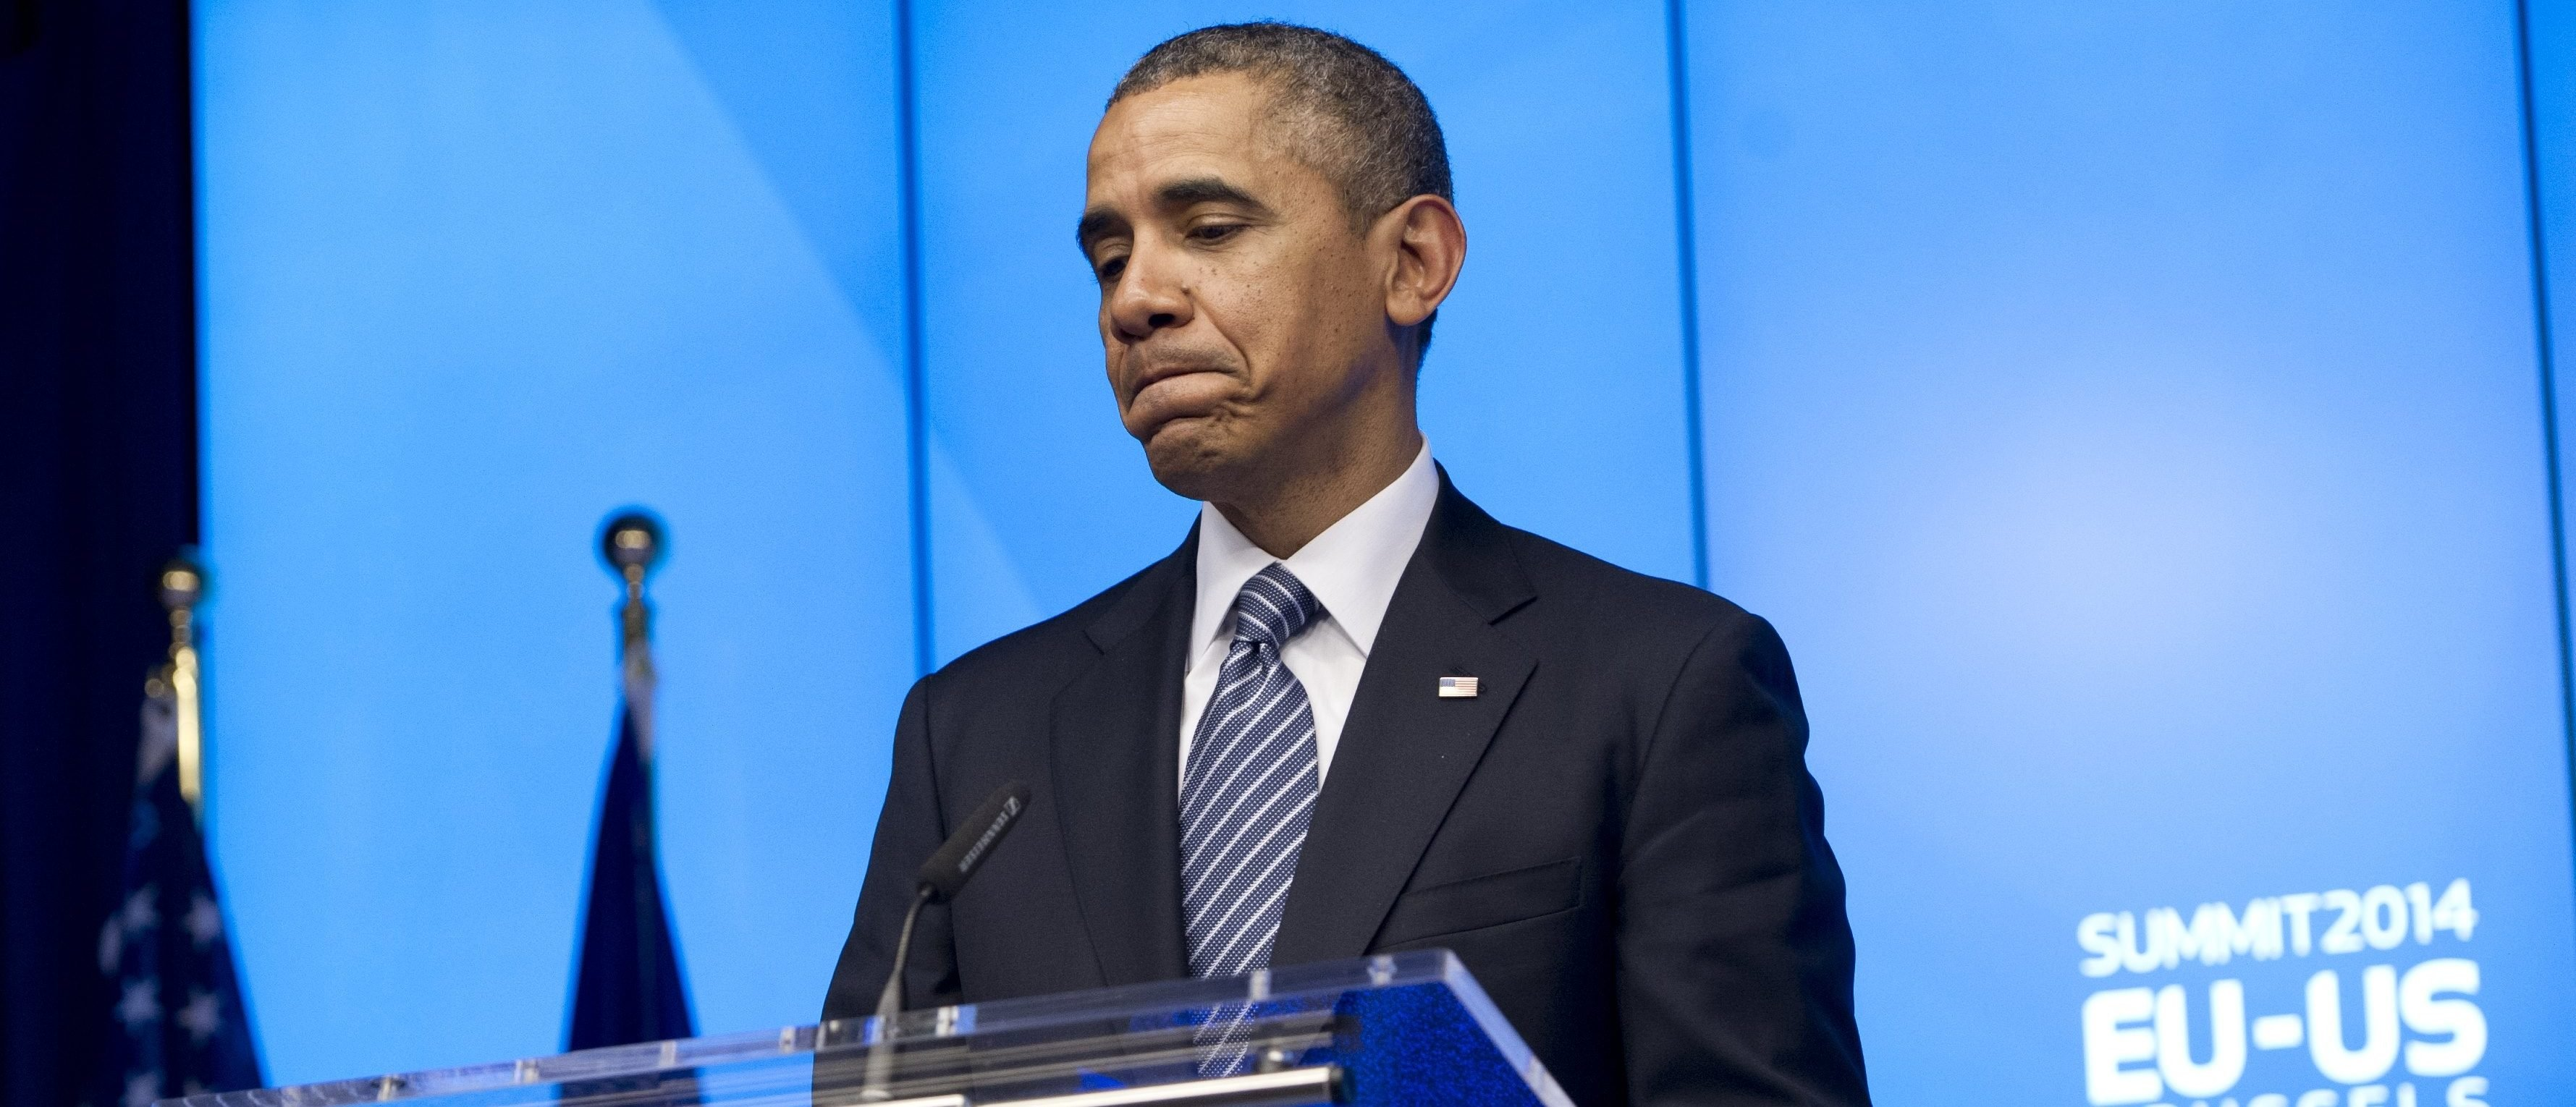 """US President Barack Obama grimaces while holding a press conference during the EU-US Summit at the European Headquarters in Brussels on March 26, 2014. Obama paid his first visit ever to the EU headquarters, cementing US-EU opposition to the takeover of Crimea after hitting out at Russian expansionism as a """"sign of weakness"""". AFP PHOTO / SAUL LOEB (Photo credit should read SAUL LOEB/AFP via Getty Images)"""